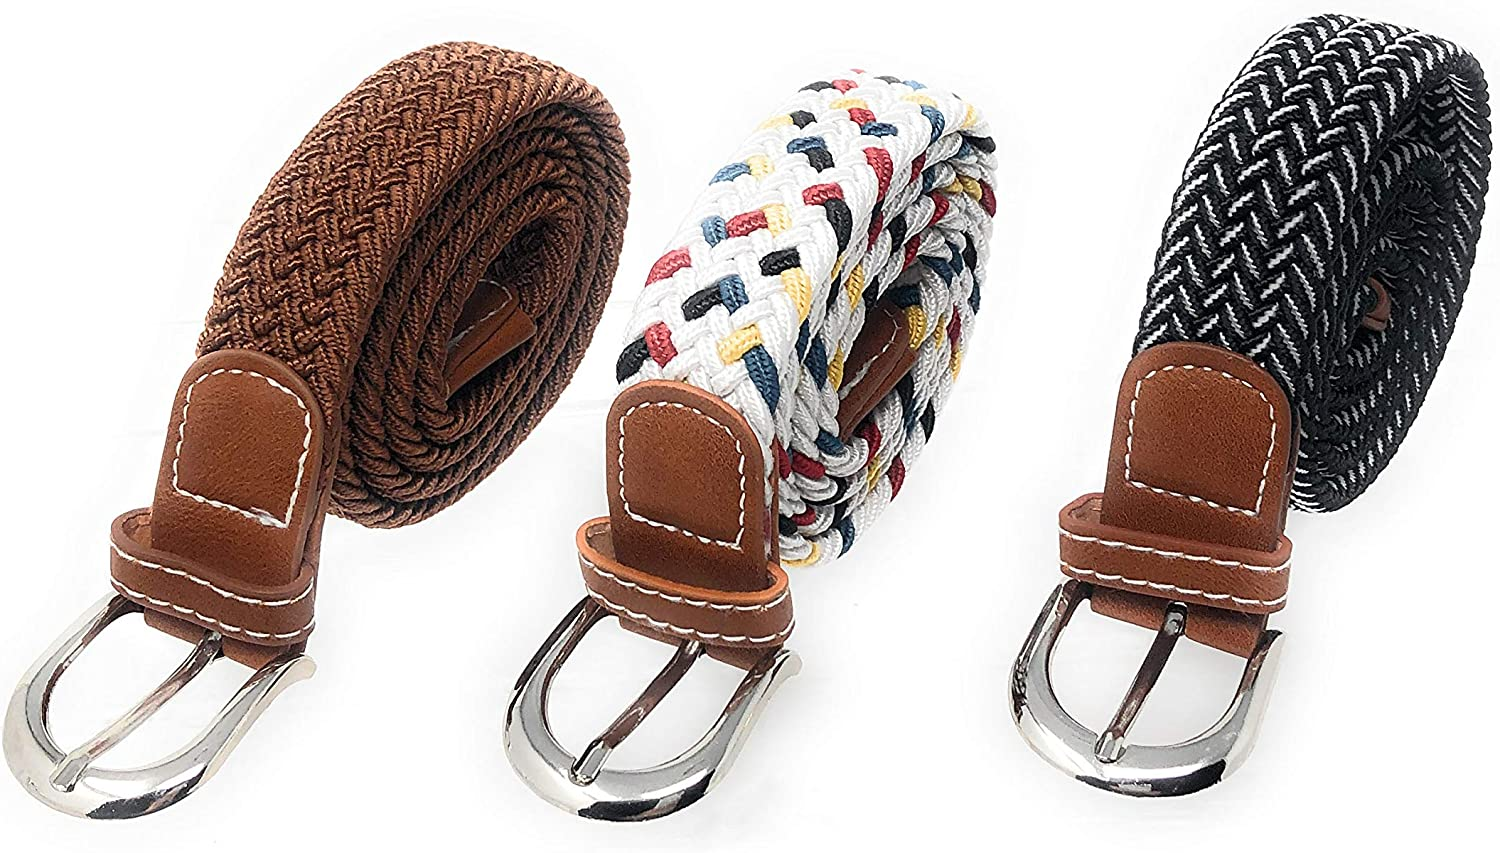 Rusoji 3 Pcs Kids Boys Girls Easy Stretch Elastic-Web Braided Woven Belt with Buckle Set